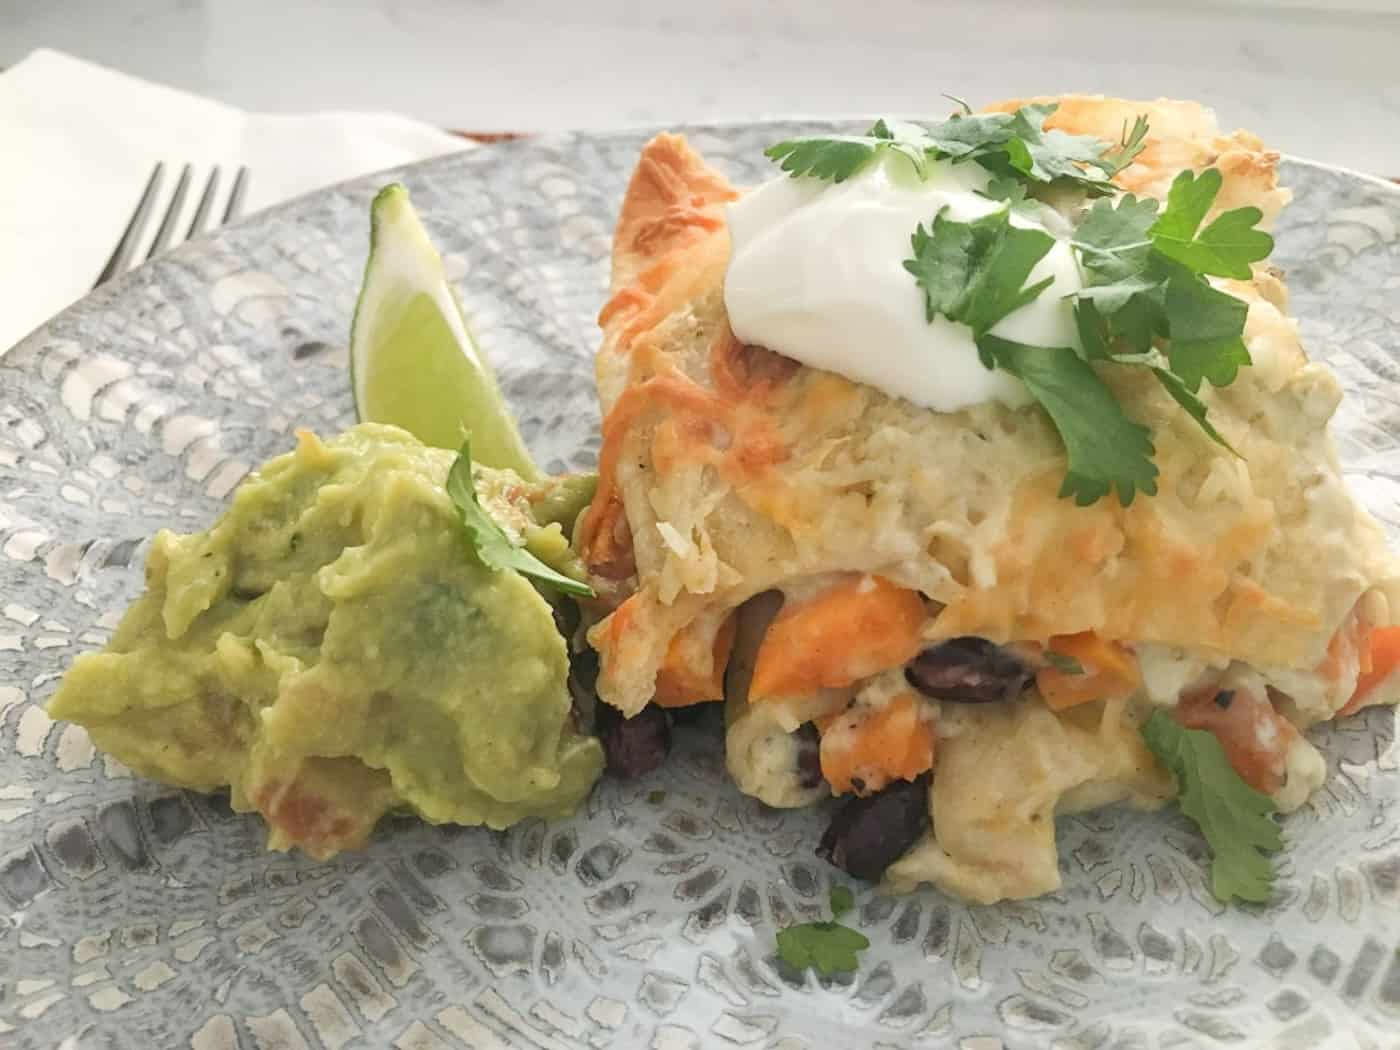 Portion of enchilada on a plate with guacamole